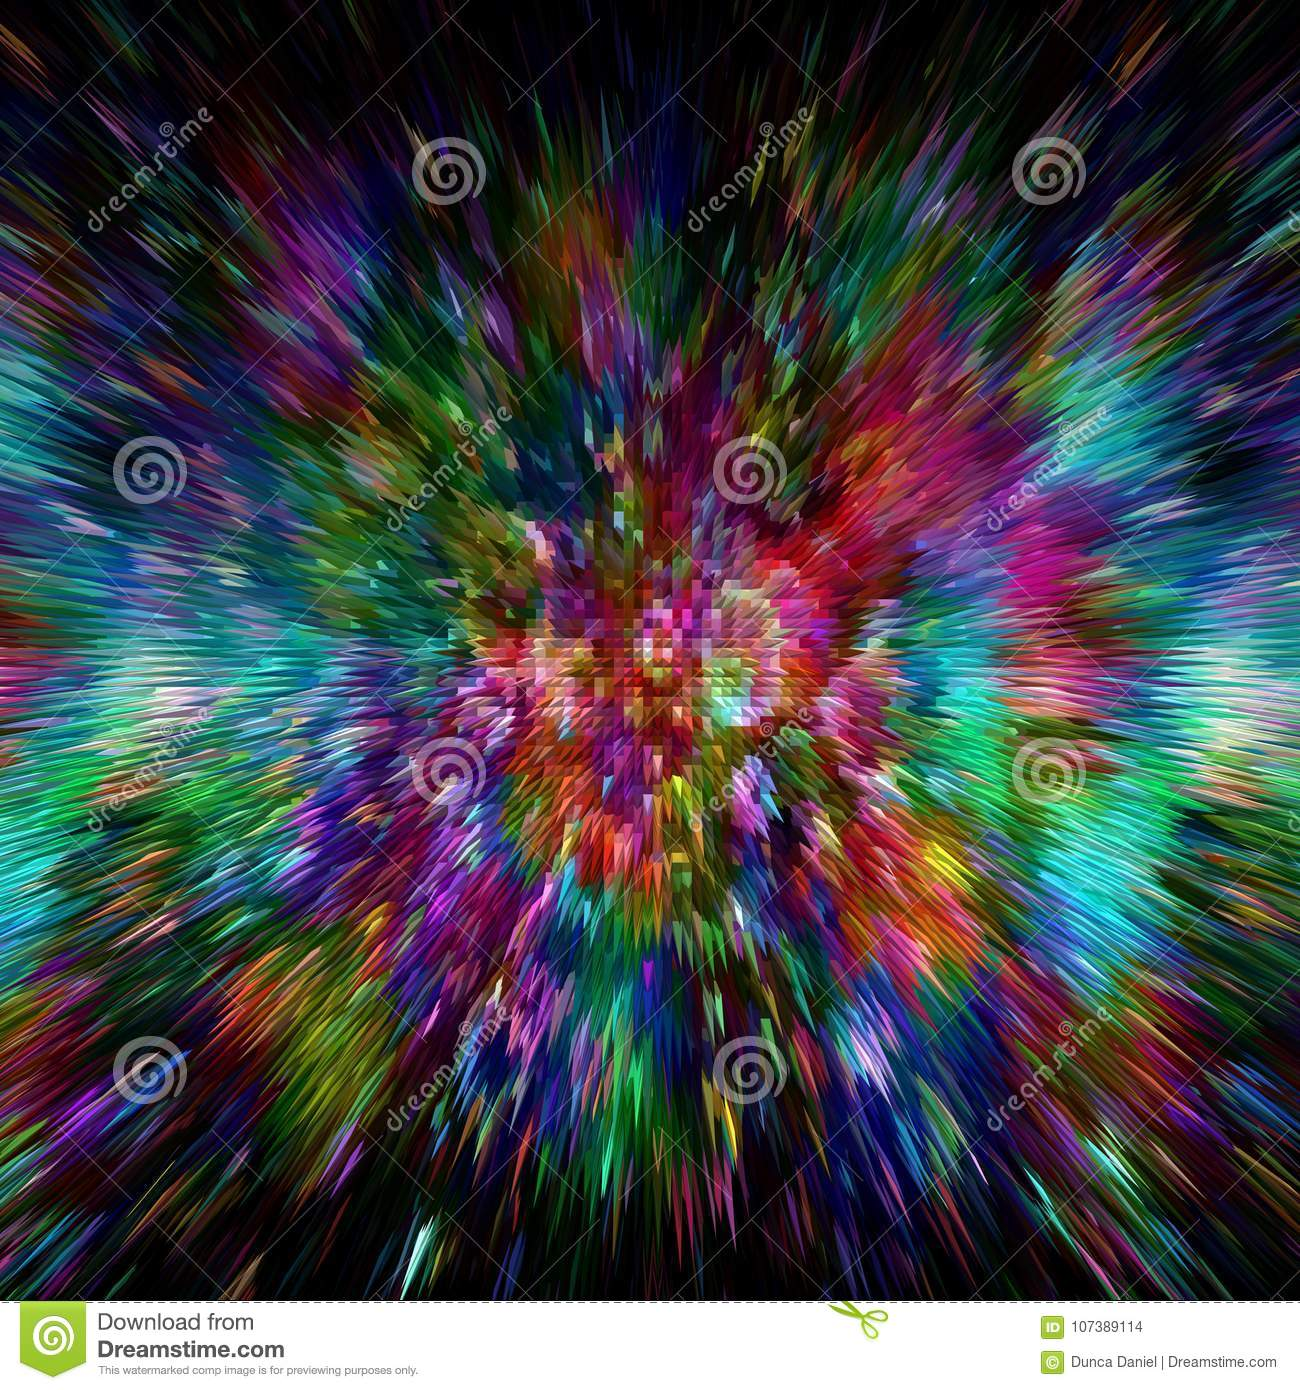 Color Burst Abstract Colorful Background Zoom Blur Explosion Wallpaper